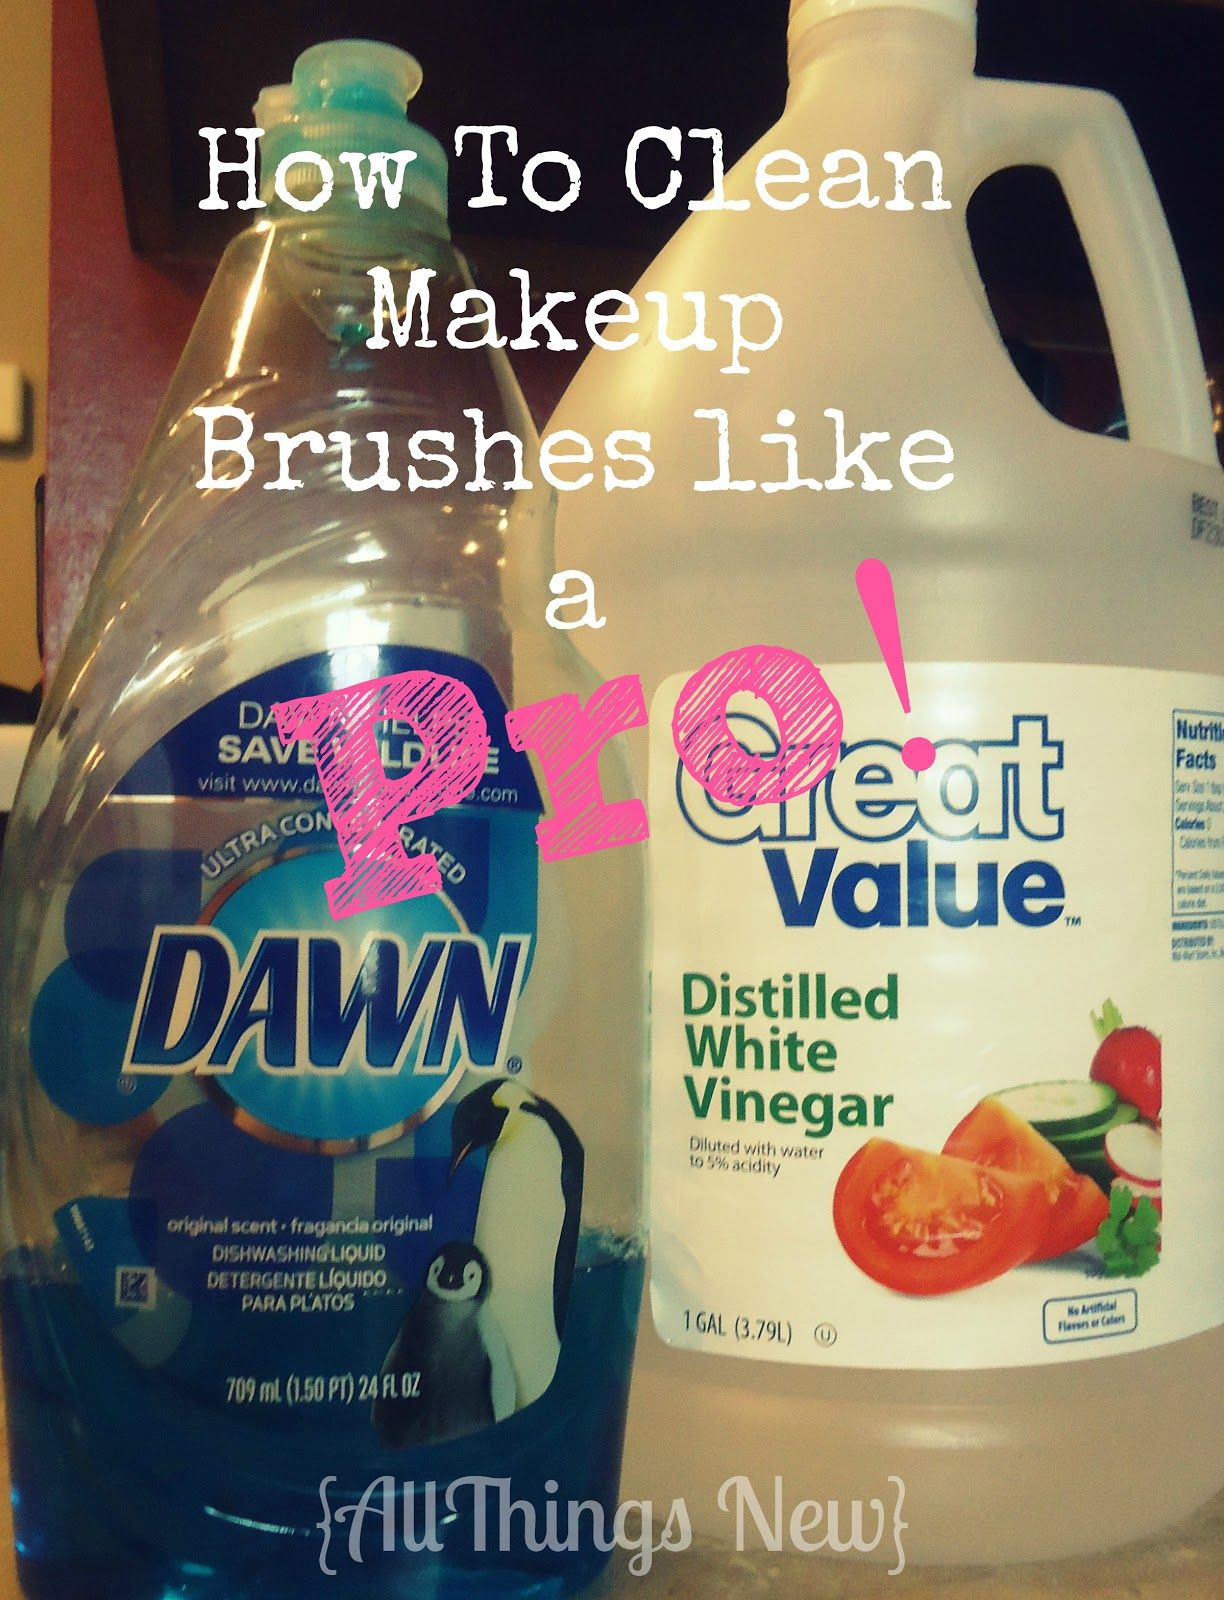 Mix Together 2 3 Cup Of White Vinegar With 1 2 Teaspoon Of Dawn Dish